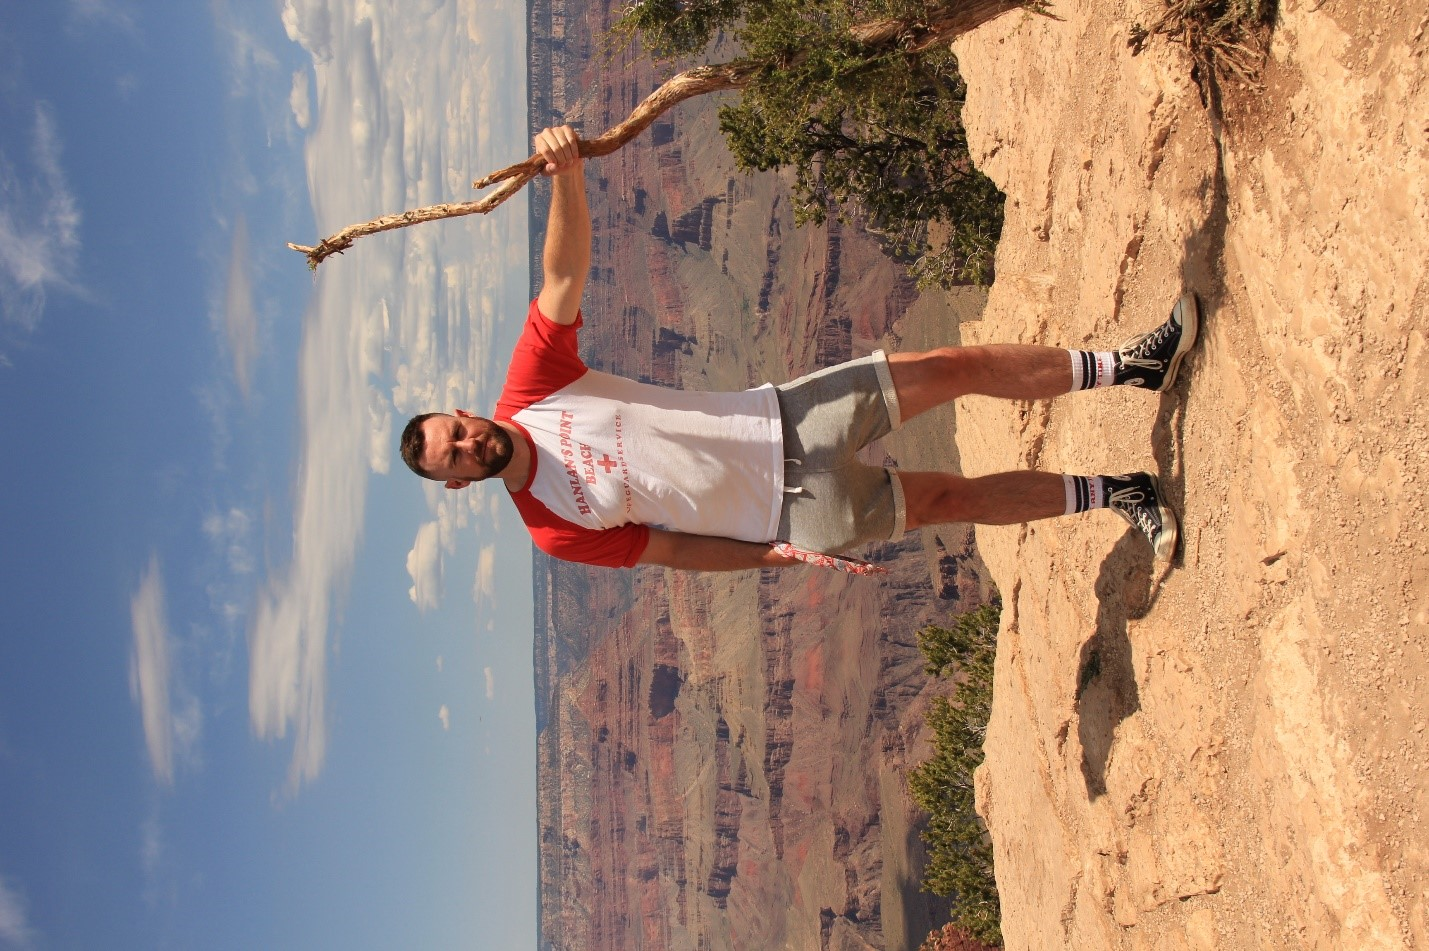 Sandy during one of his travels. South Rim of the Grand Canyon in Arizona.